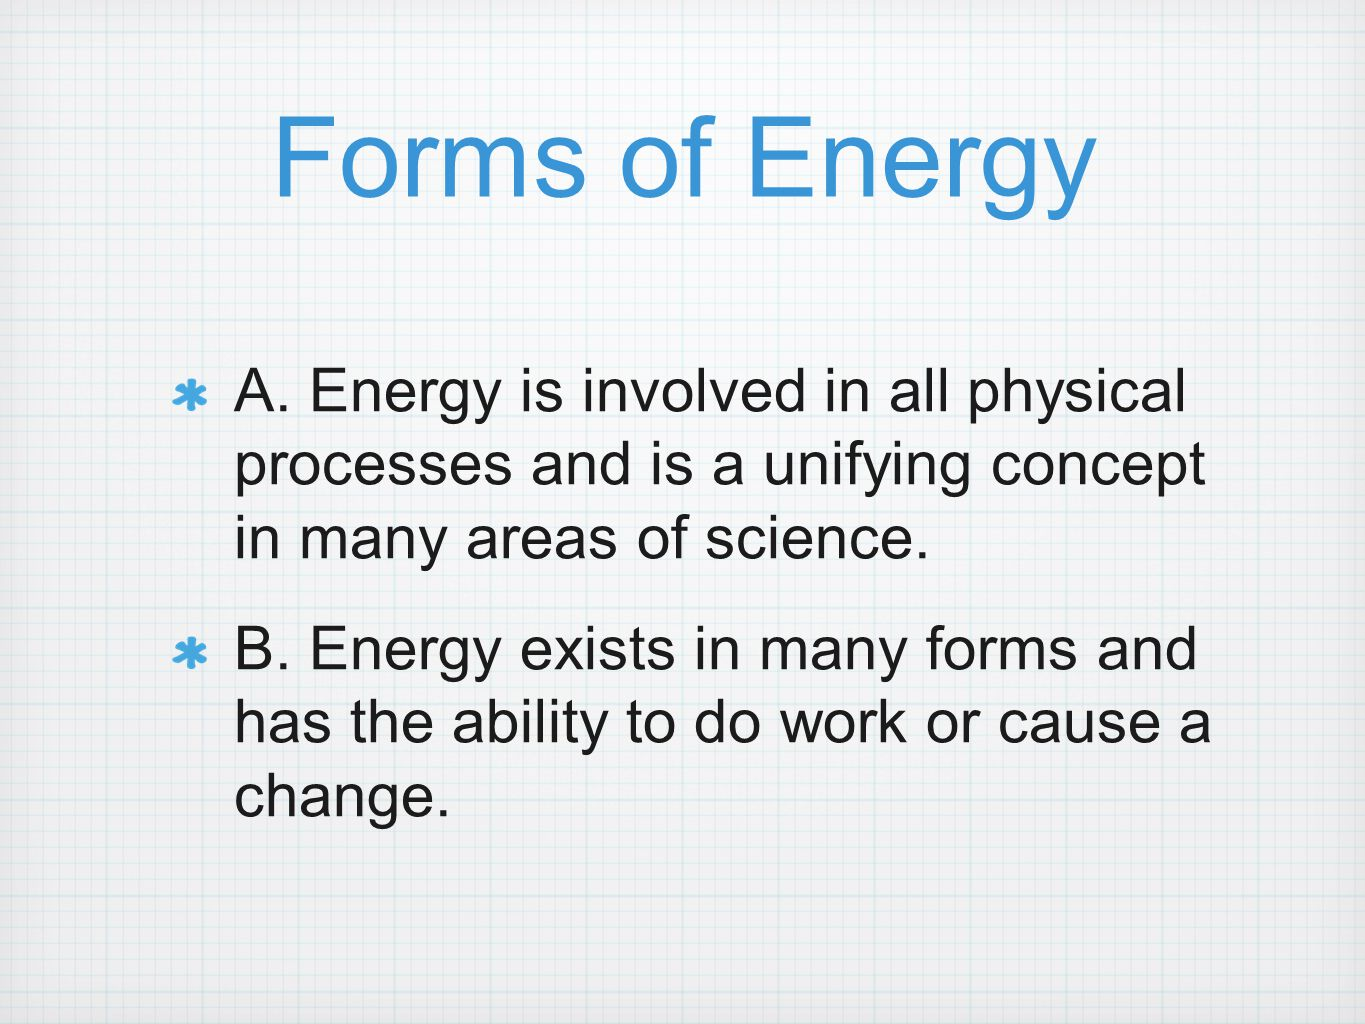 Forms of Energy A. Energy is involved in all physical processes and is a unifying concept in many areas of science.